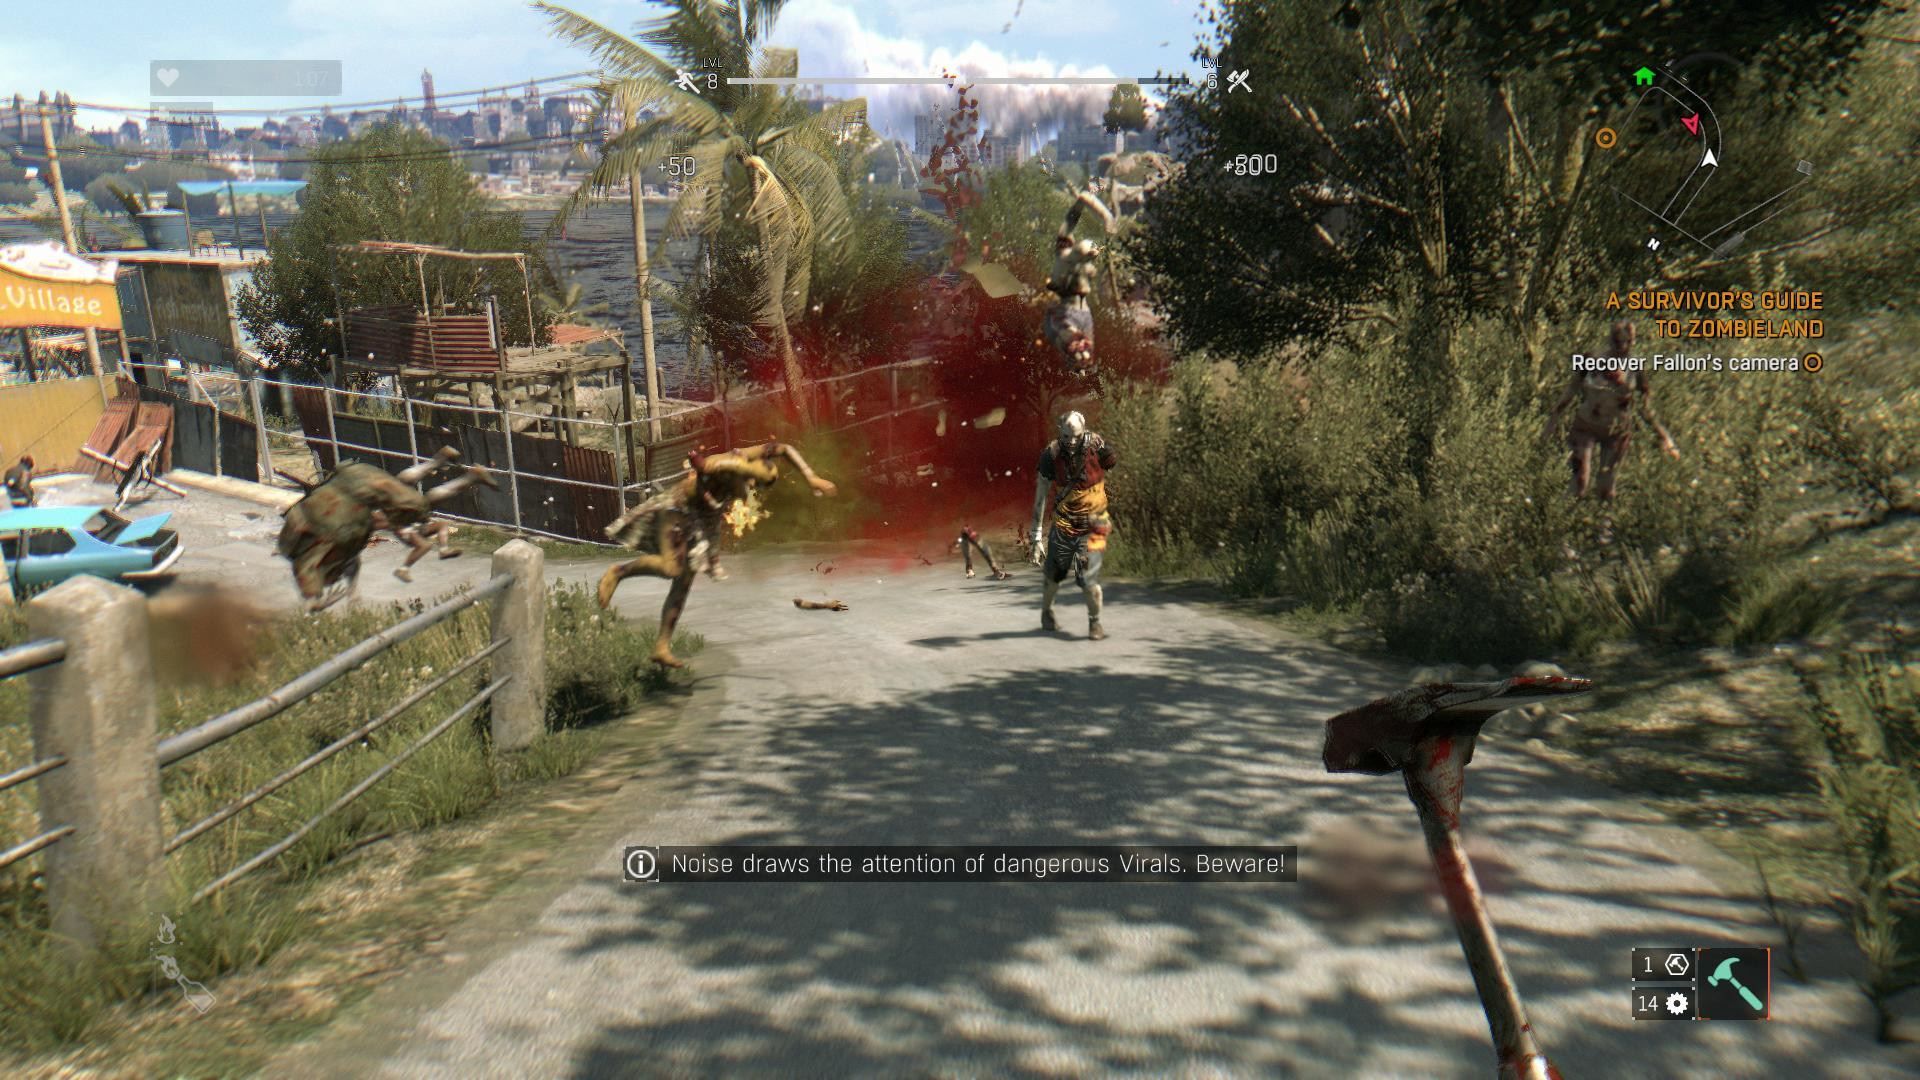 Dying light receives major patch on pc, improves performance.